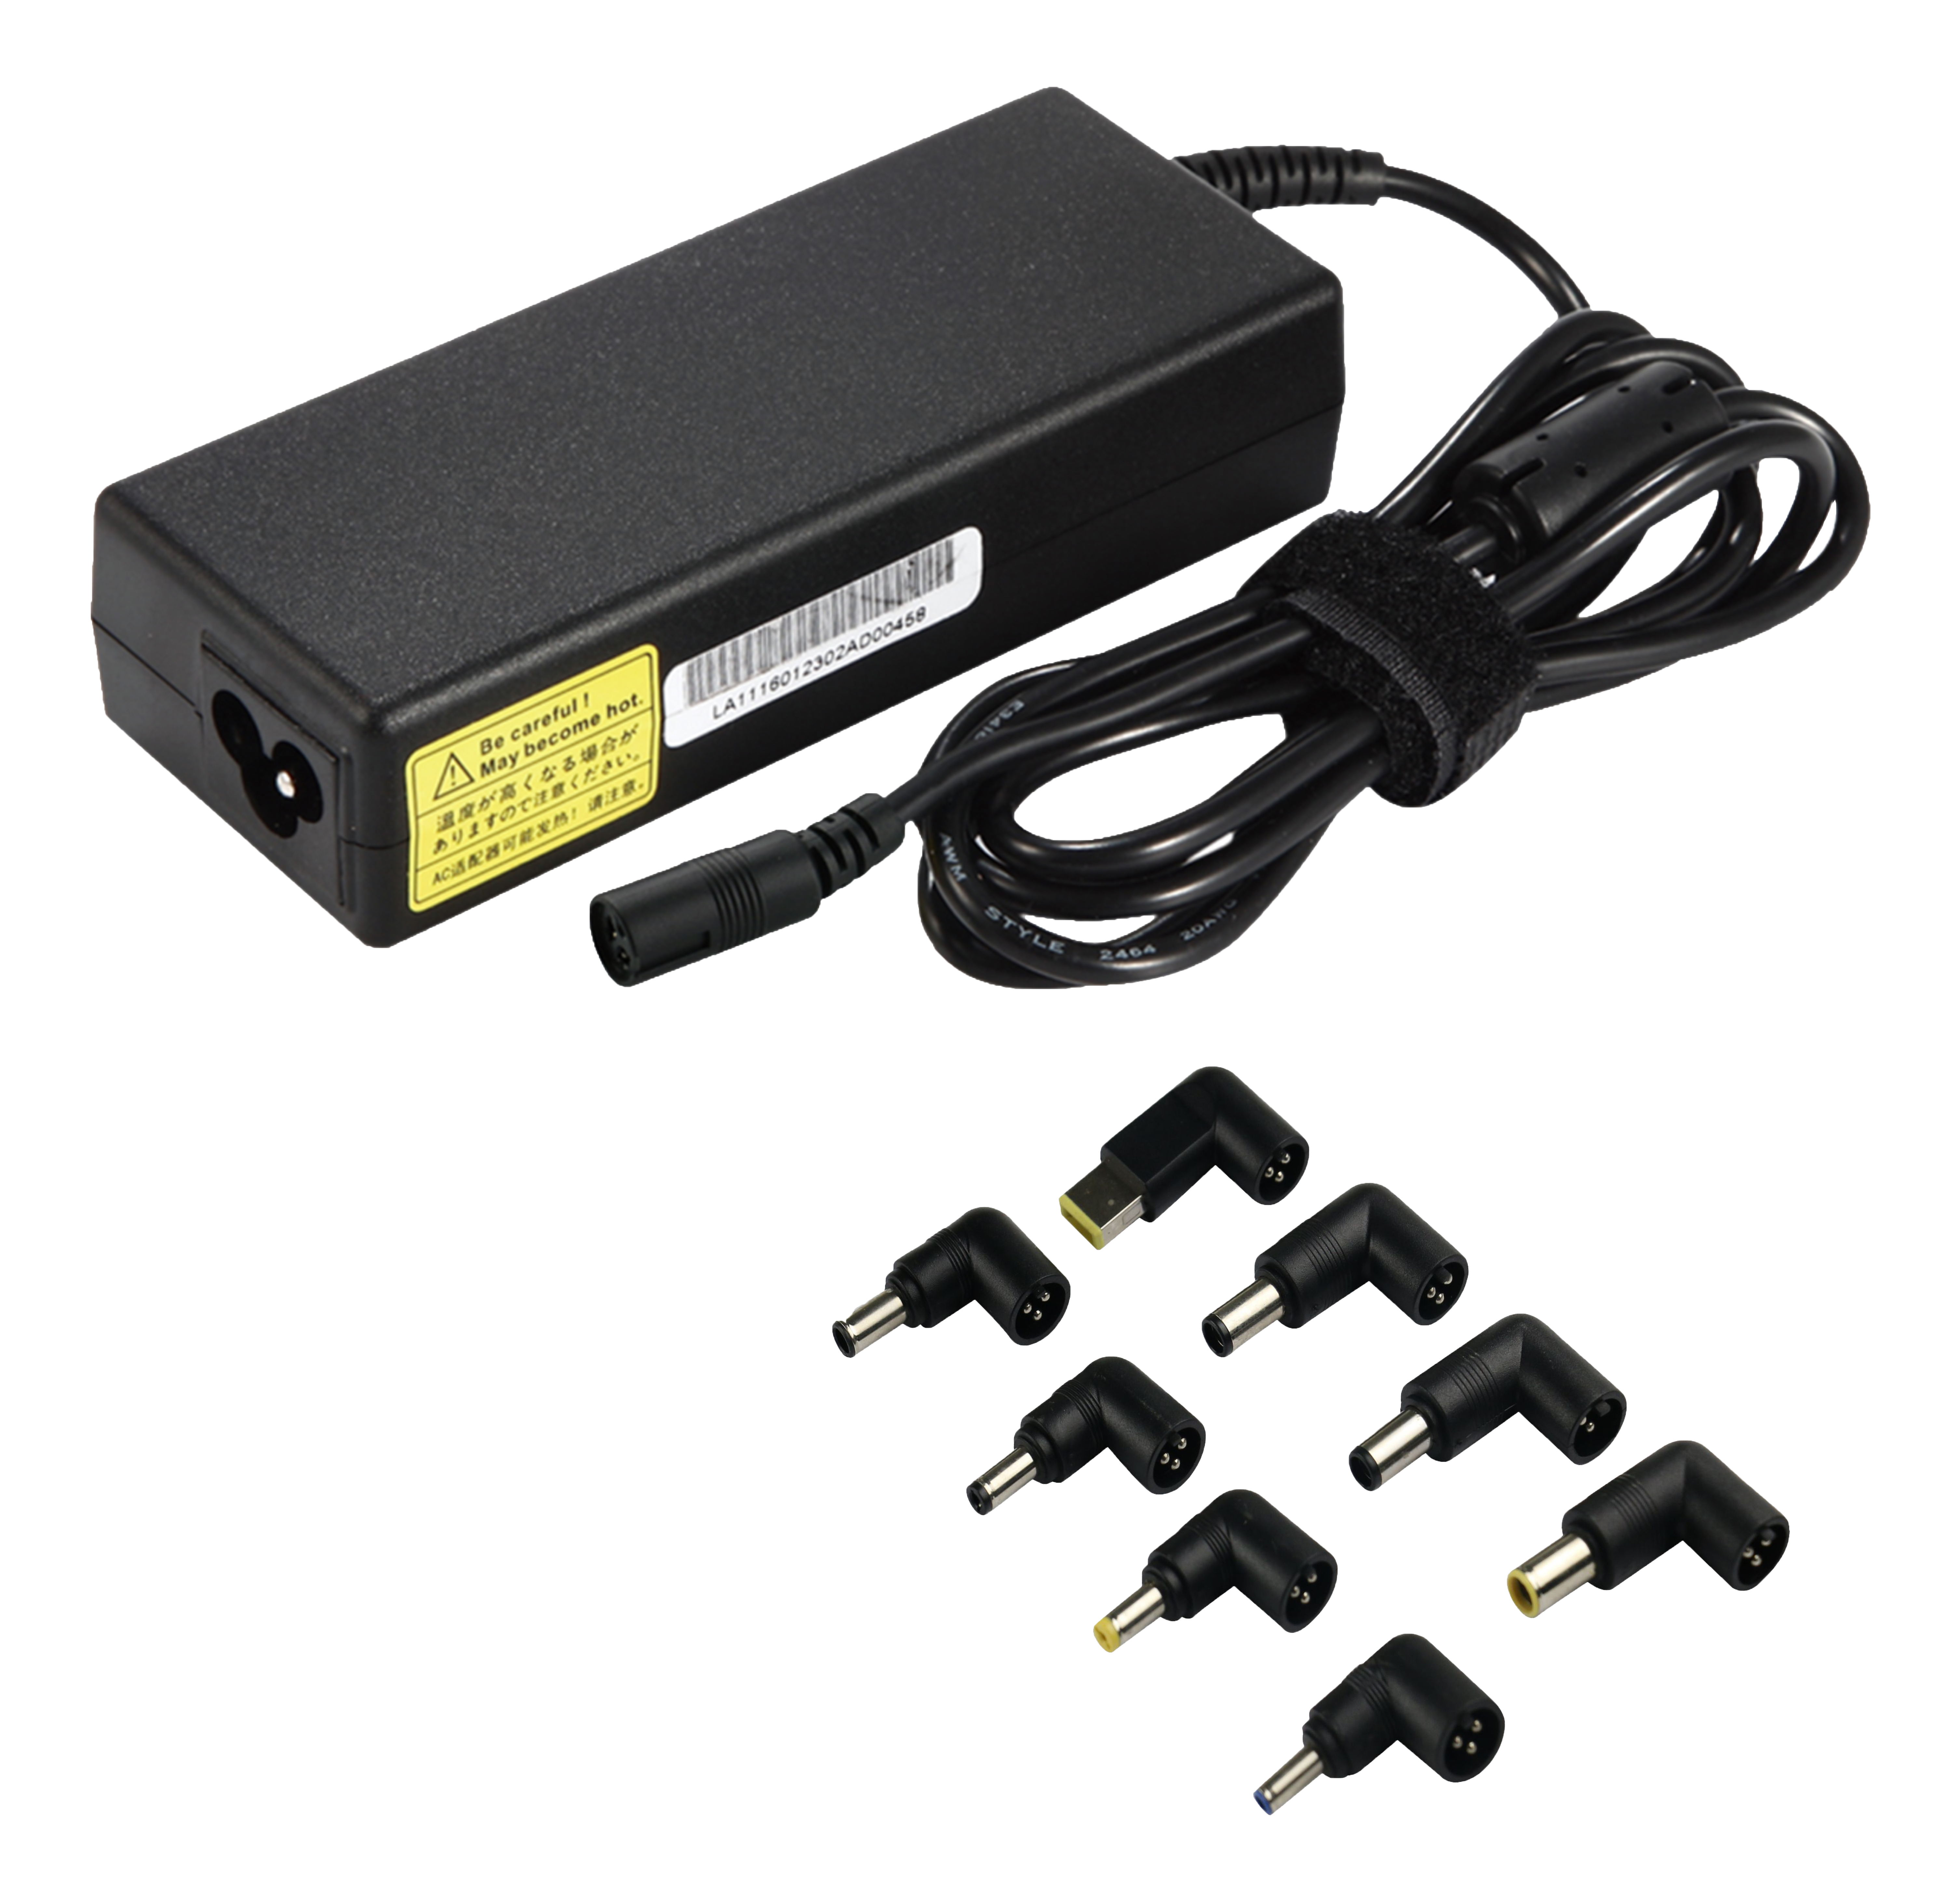 Epzi Universal power adapter for laptops, 90W, 15-20V/6A (max), black AFUA0908